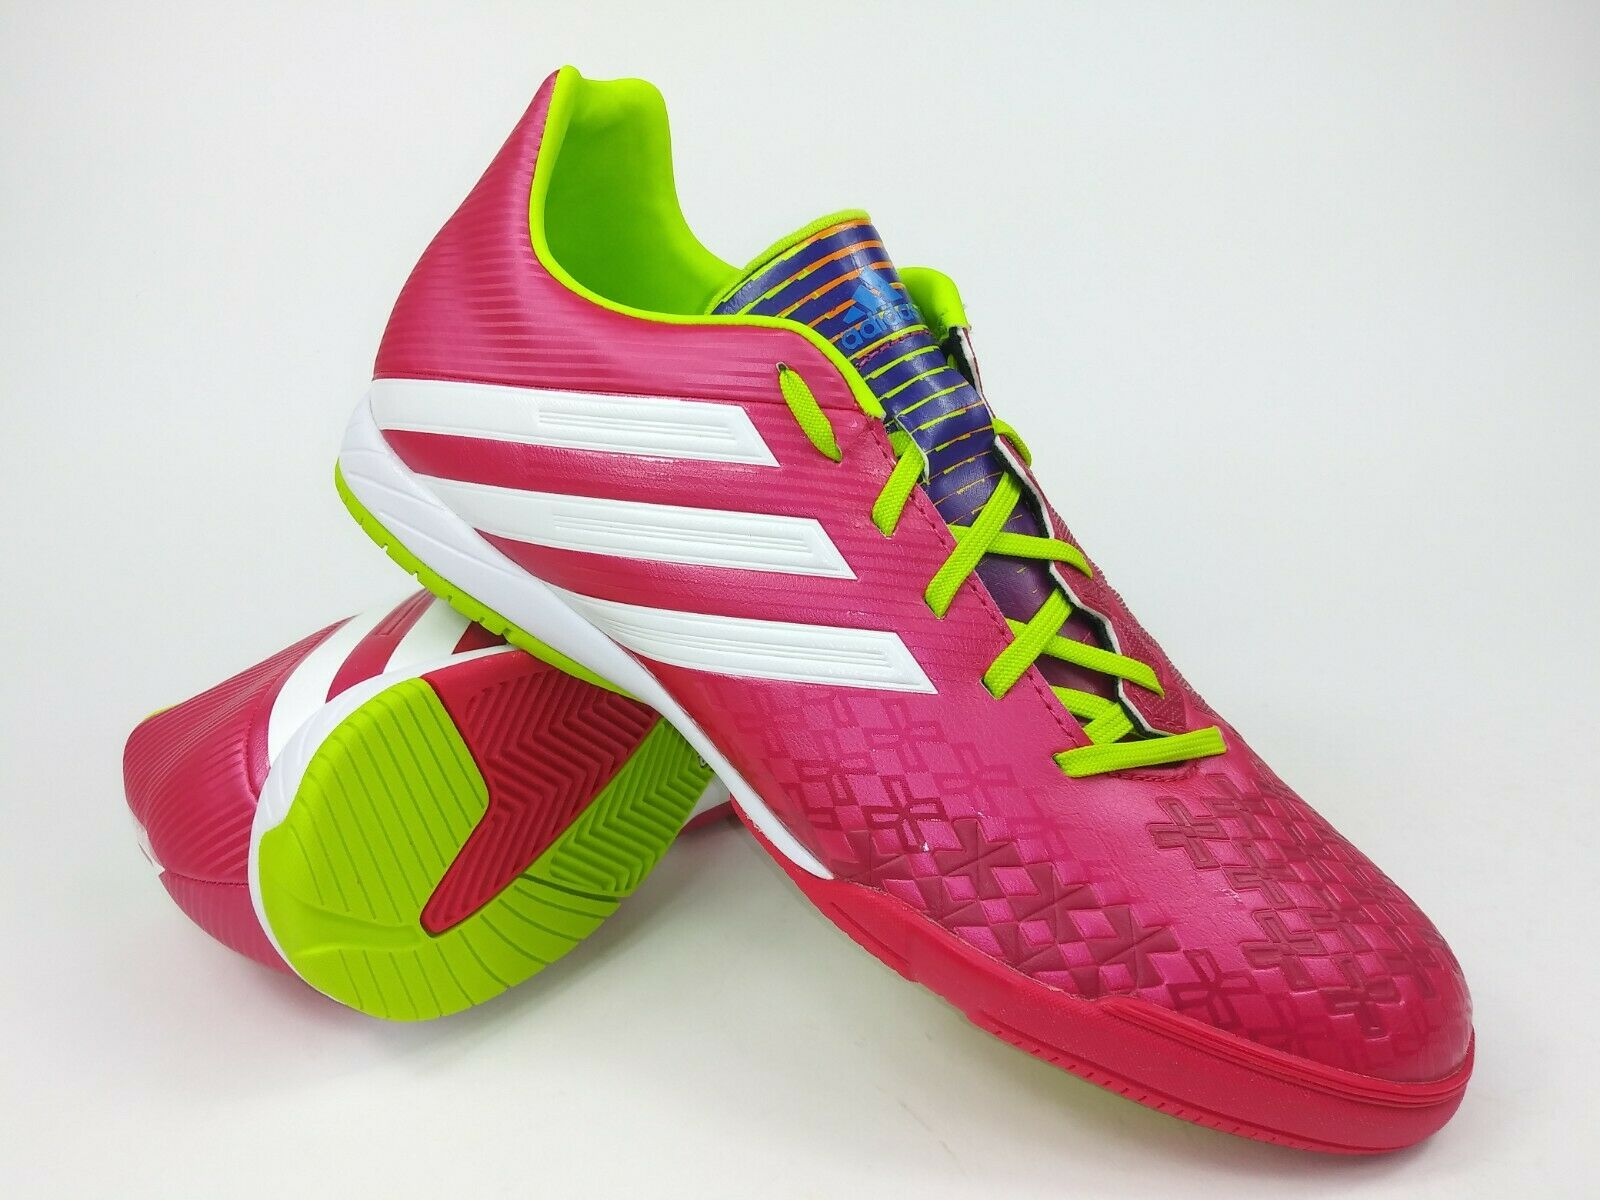 Adidas Mens Rare P Absolado LZ IN F32591 Pink White Indoor Soccer shoes Boots